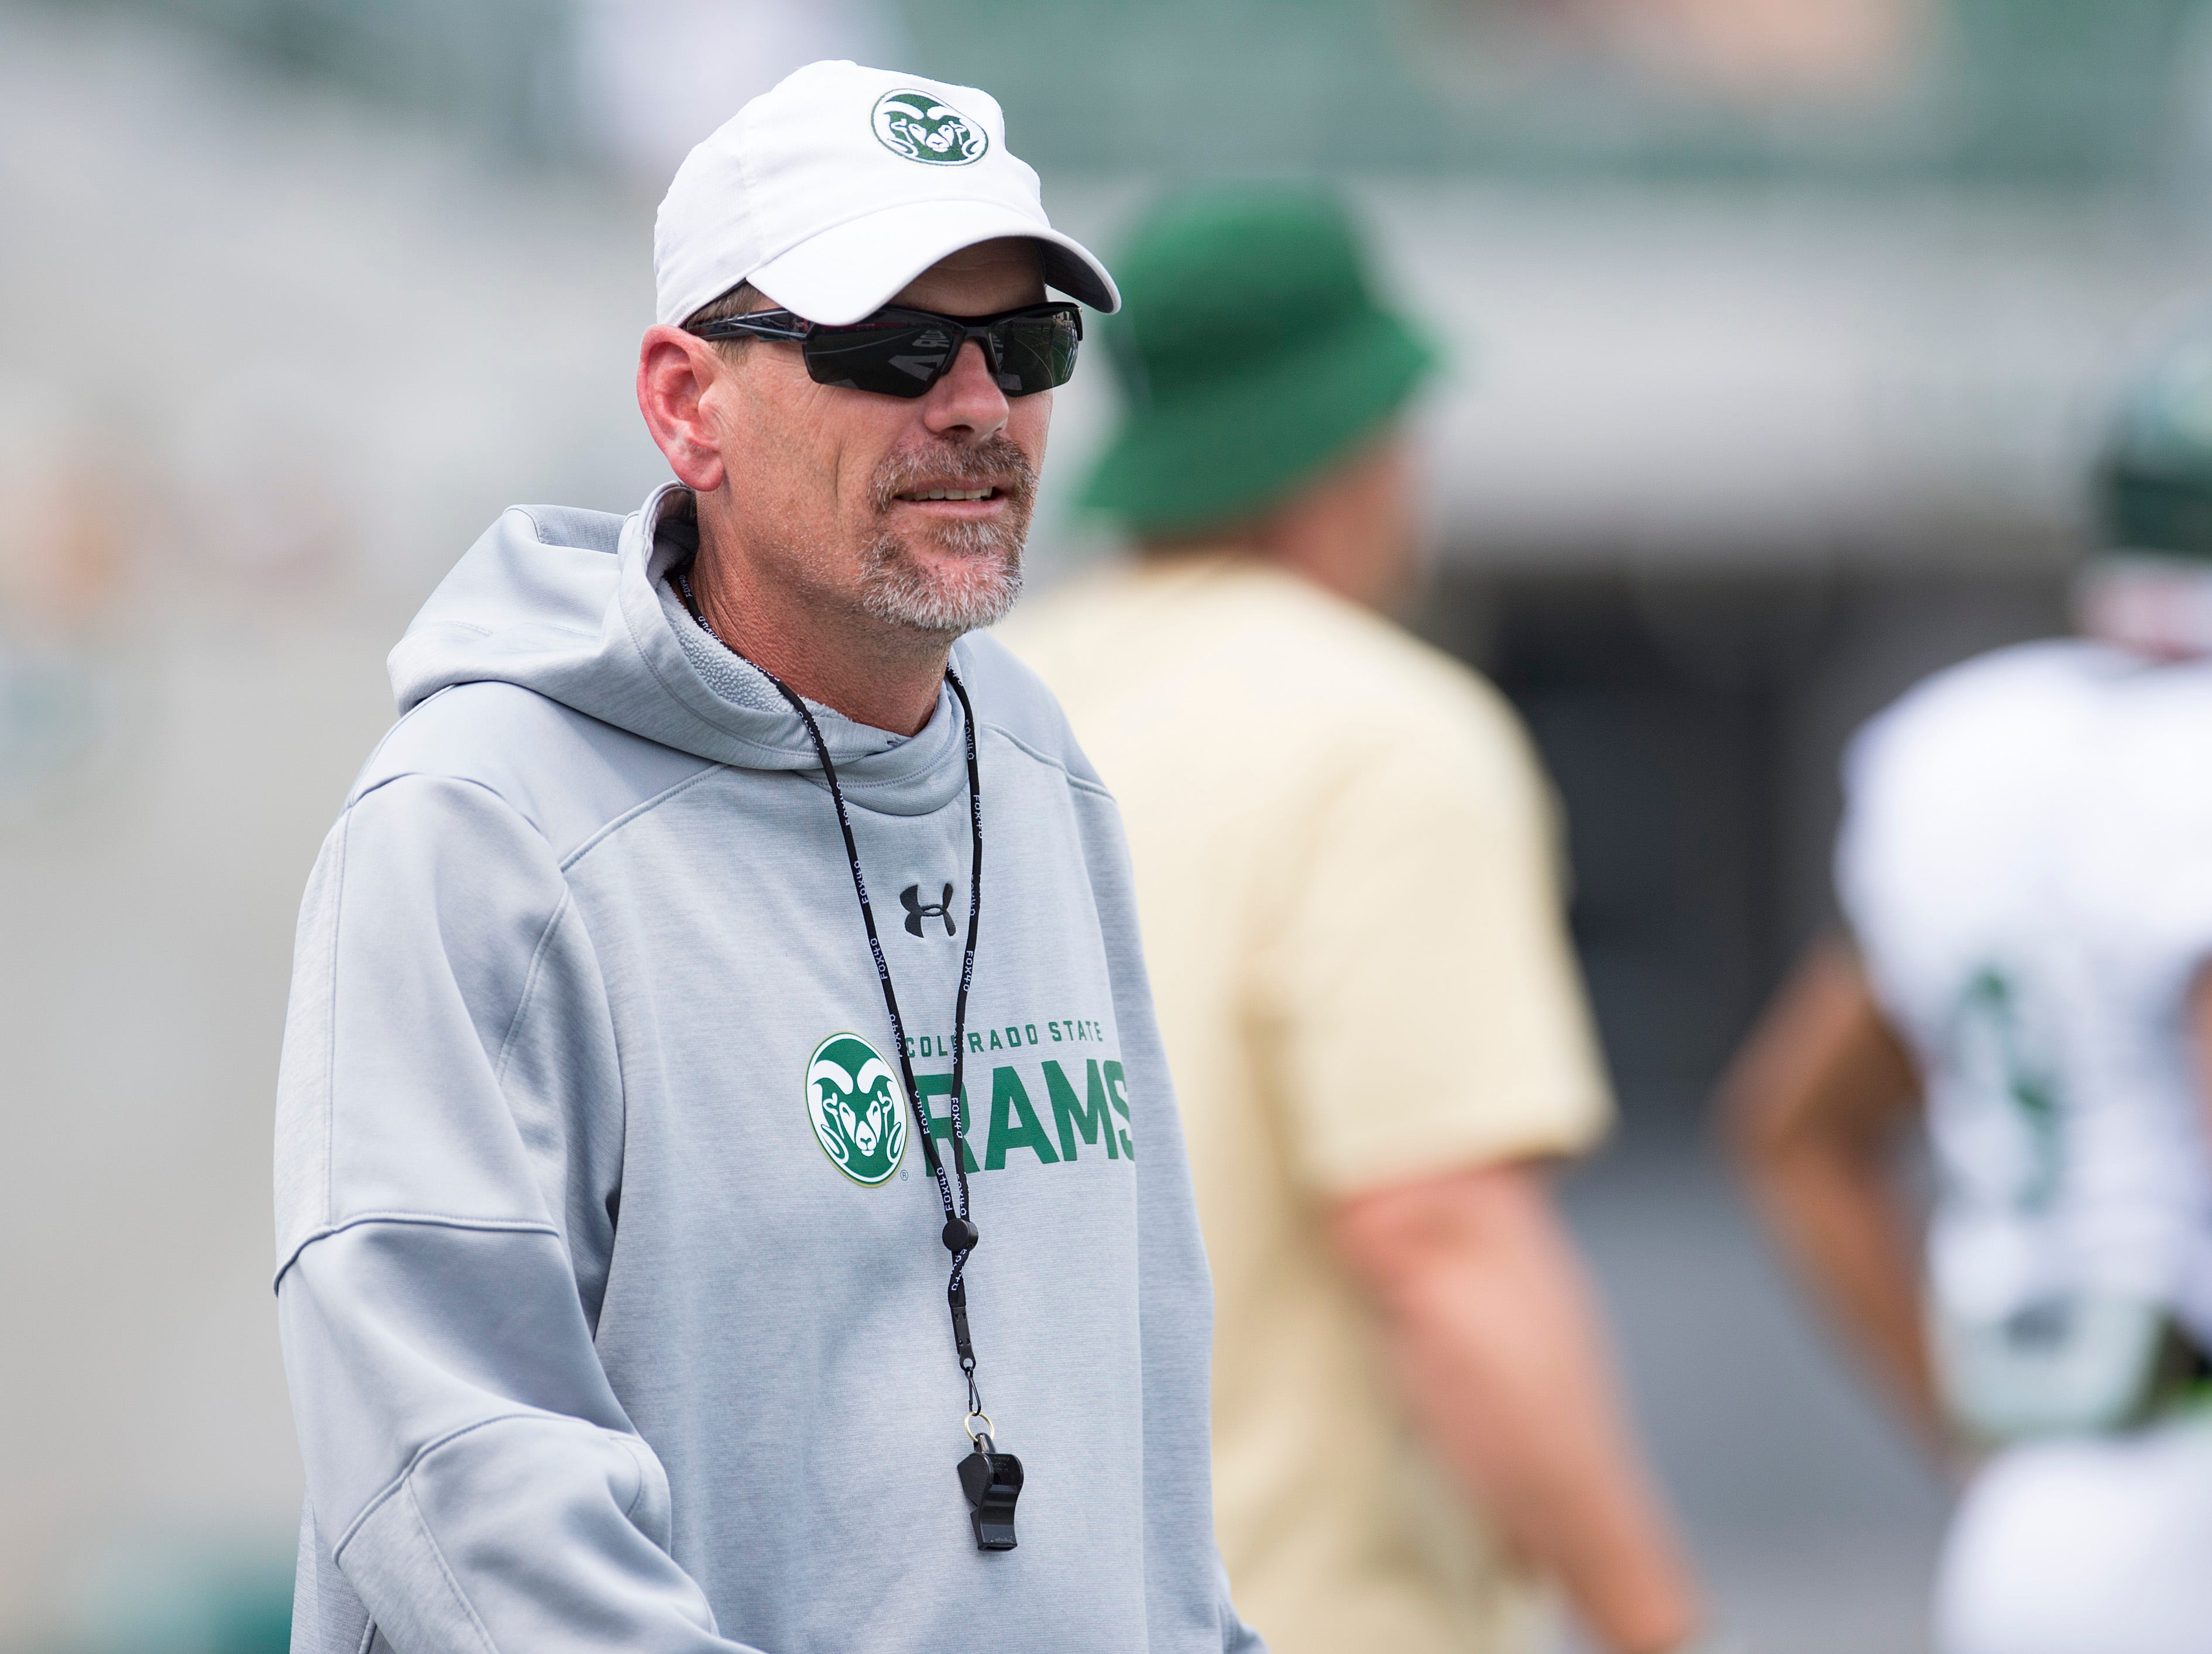 CSU head football coach Mike Bobo watches the Rams warm up for a scrimmage during an open house hosted by the Rams outside of Canvas Stadium on Saturday, August 4, 2018.